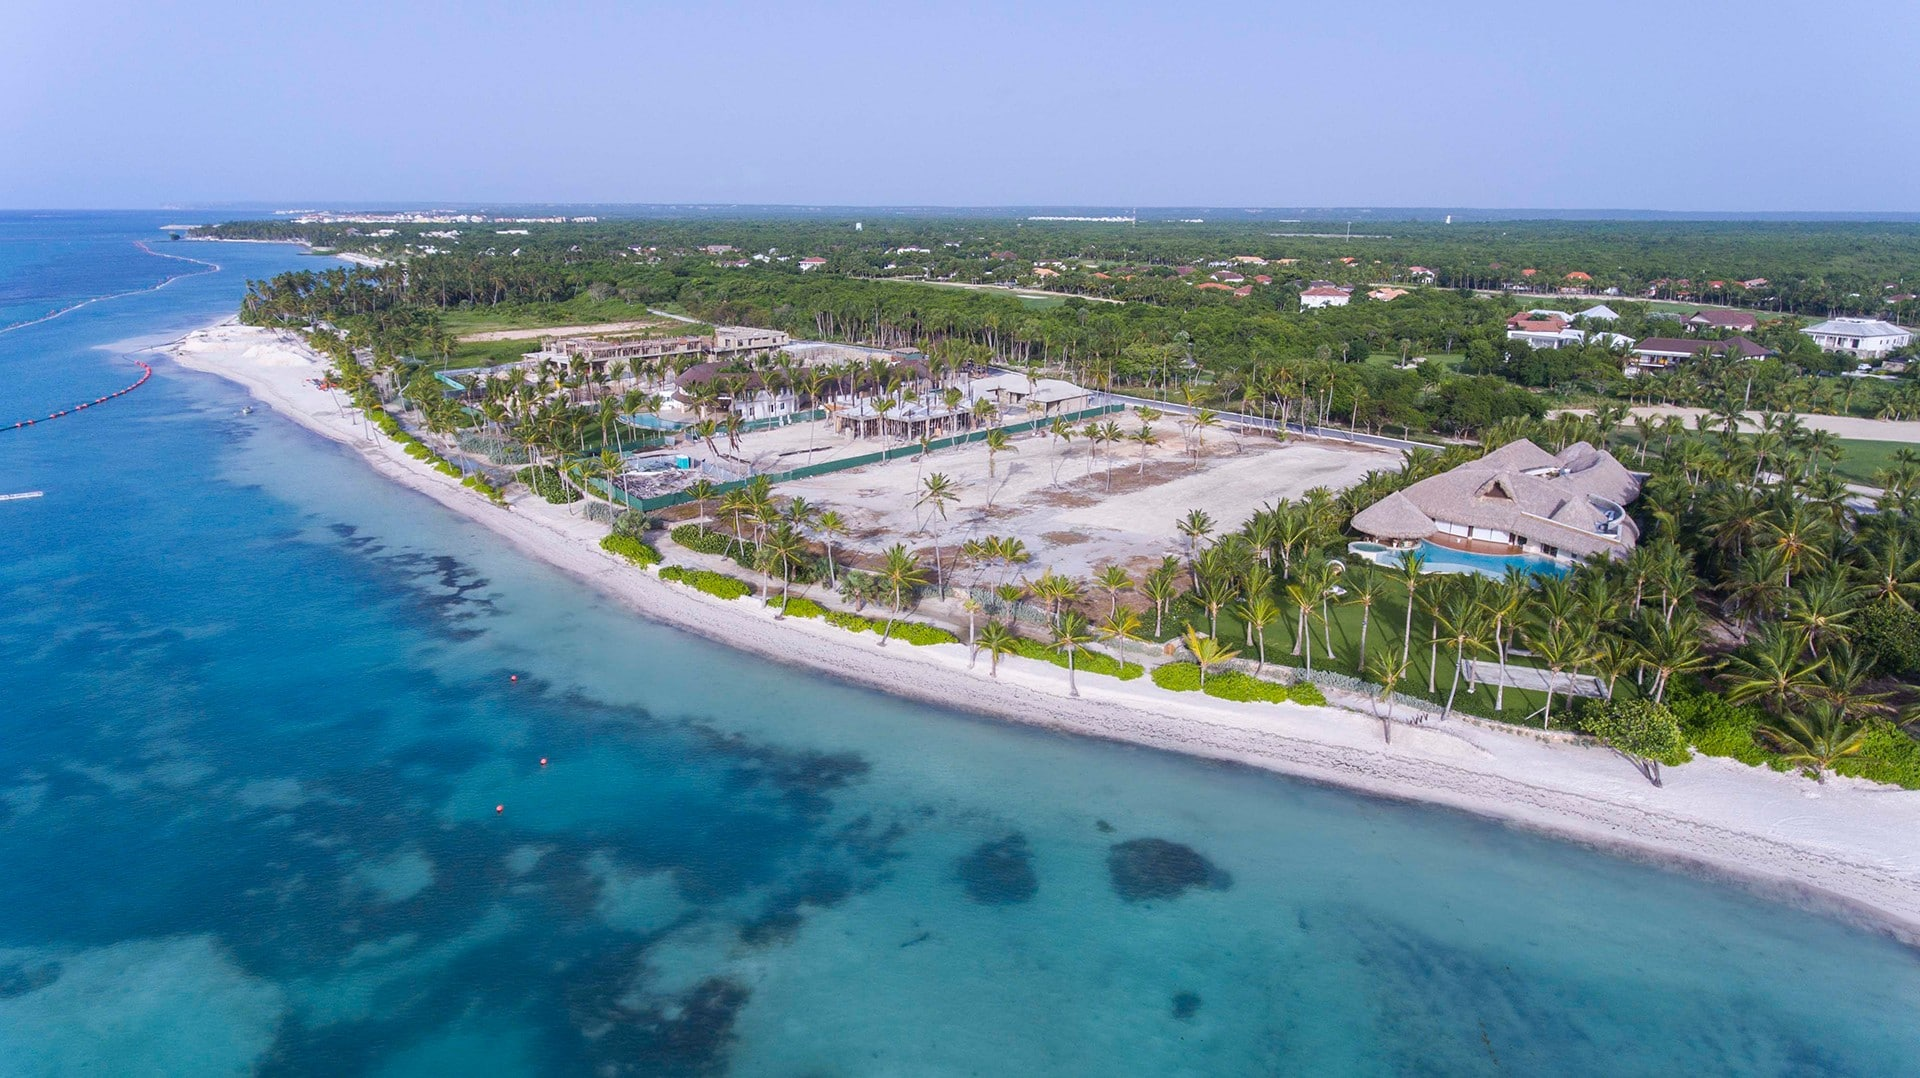 punta cana lots from above